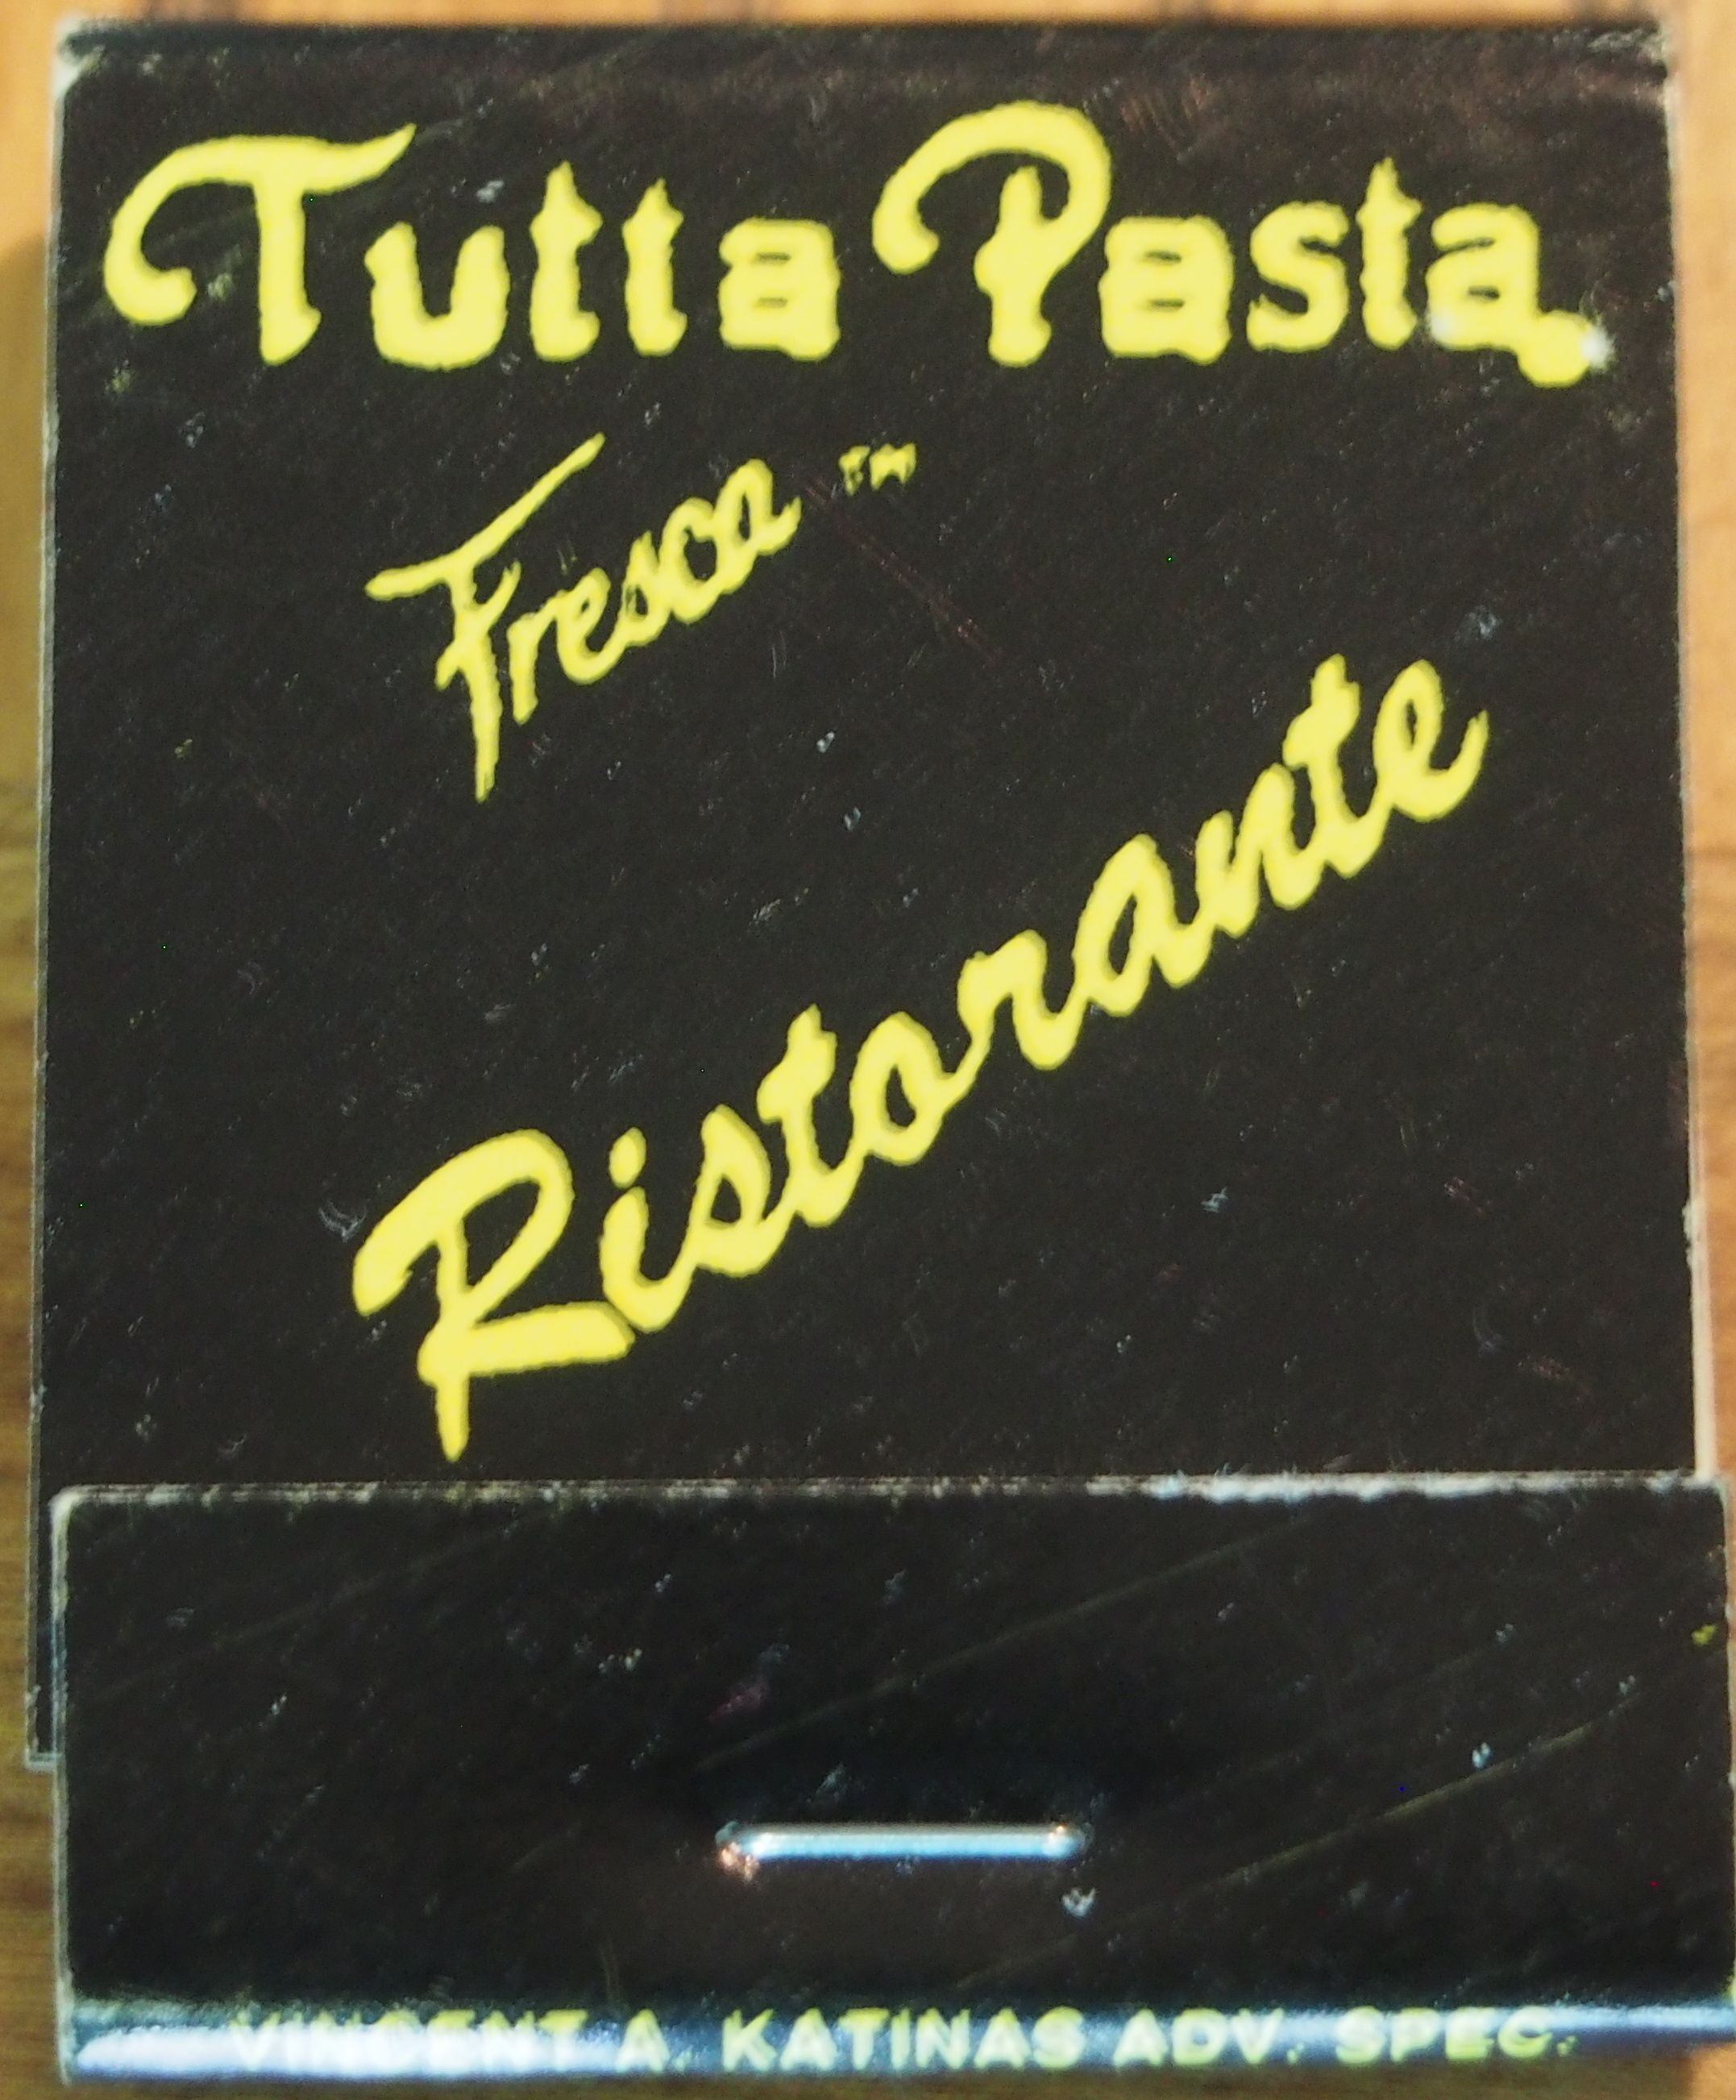 Tutta Fresca Ristorante #matchbook To order your business' own branded #matchbooks call TheMatchGroup @ 800.605.7331 or go to www.GetMatches.com today!